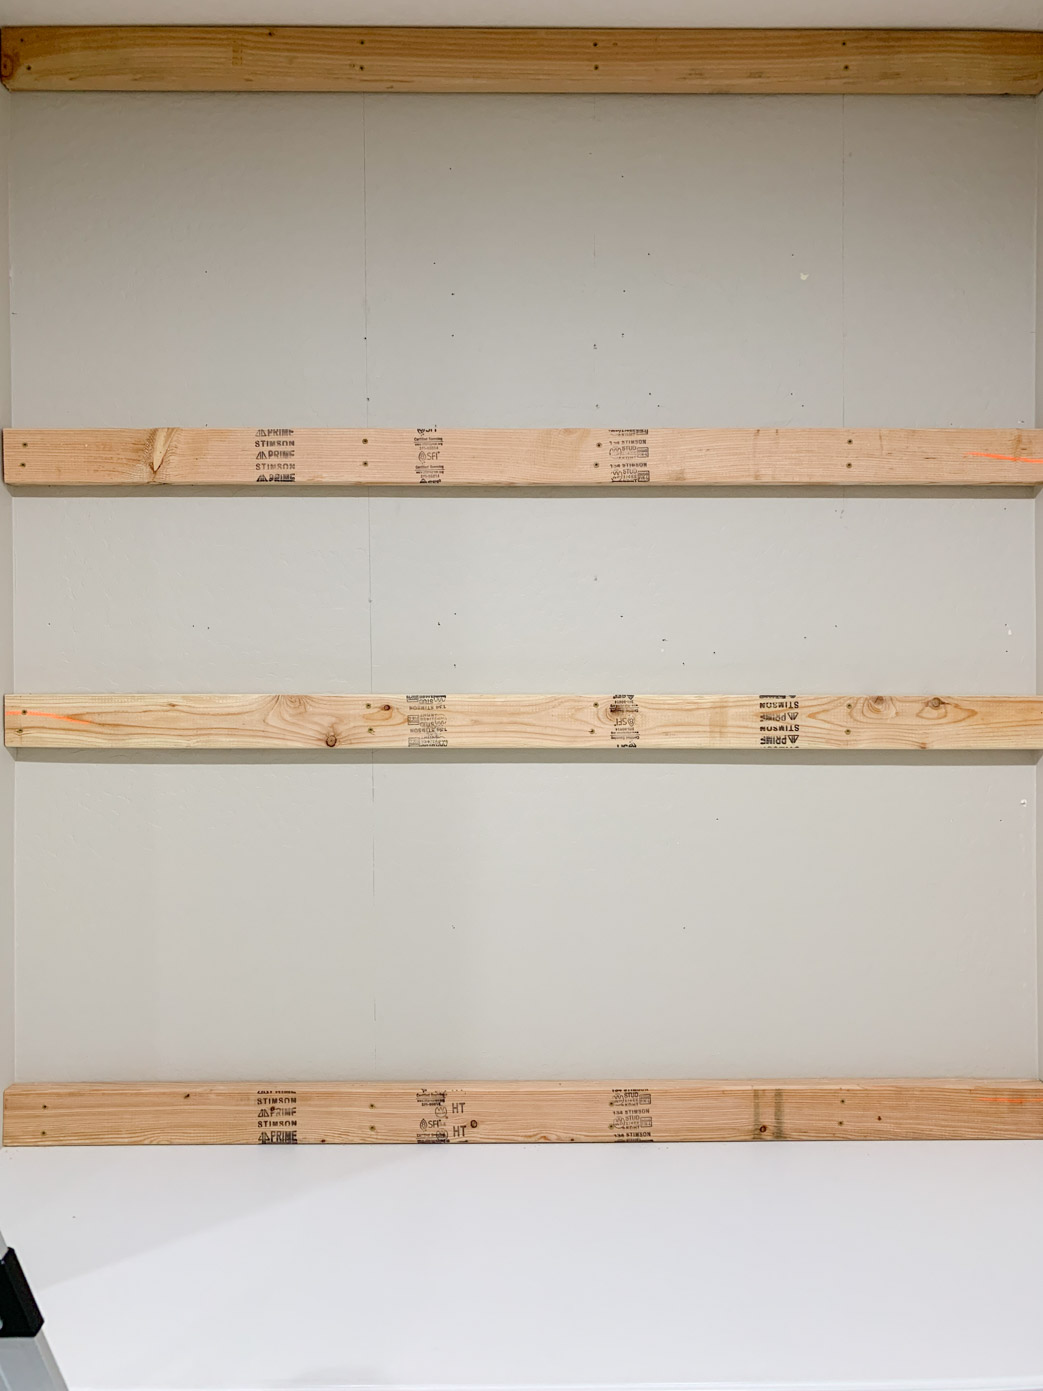 4 pieces of horizontal wood on a wall